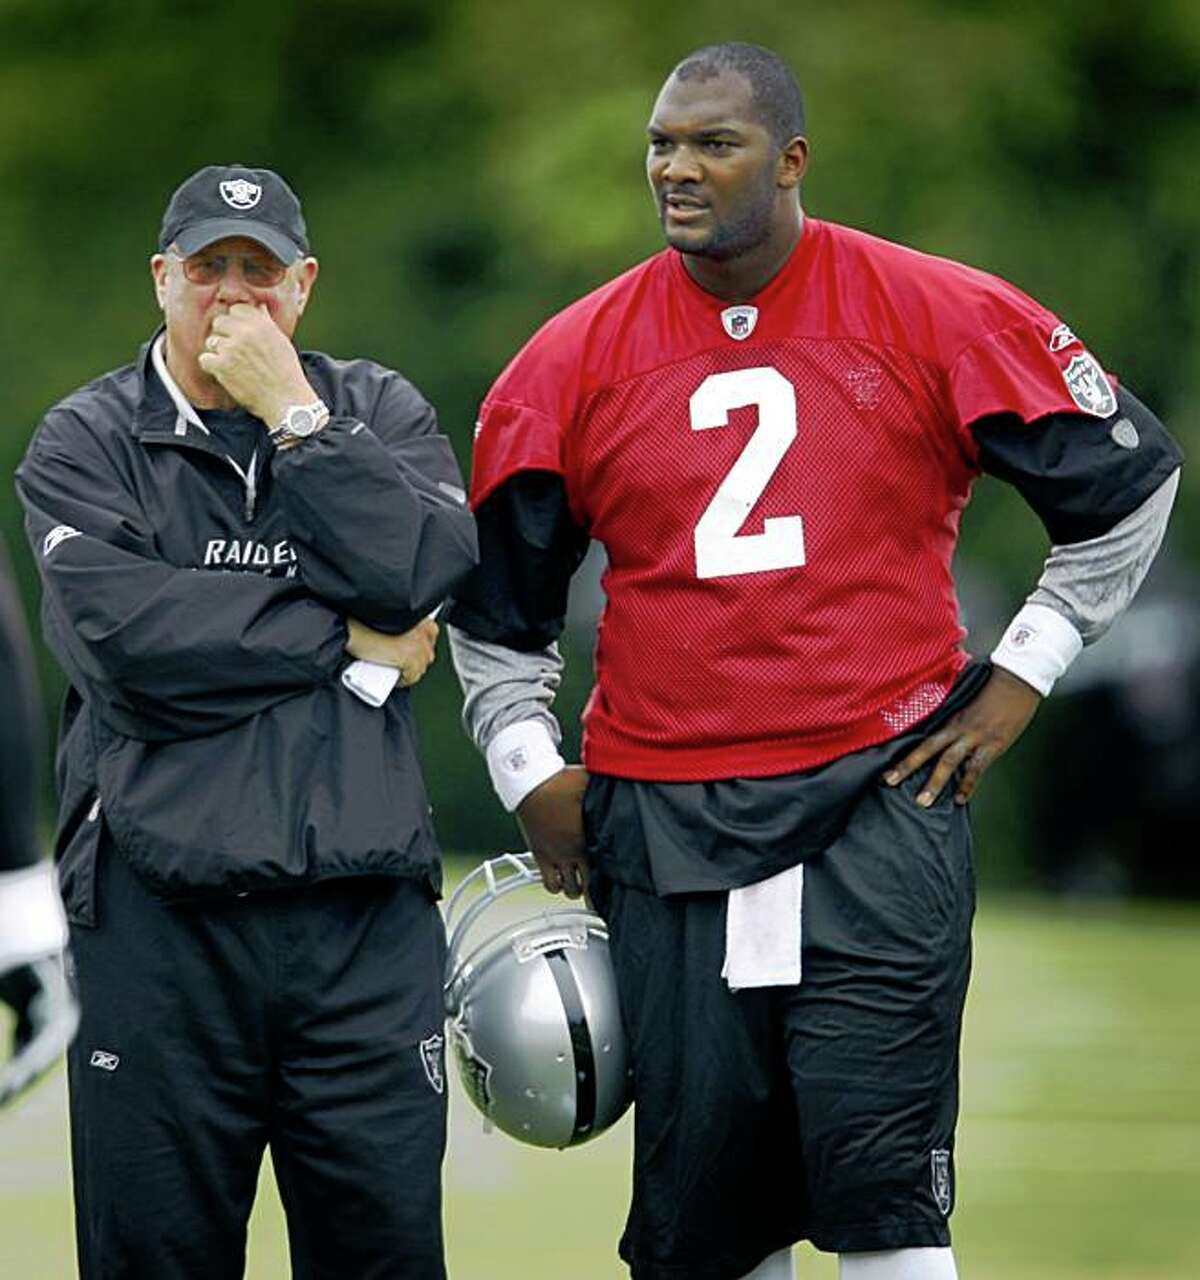 Quarterbacks coach Paul Hackett watches an offensive drill with JaMarcus Russell at Oakland Raiders training camp in Napa, Calif., on Thursday, July 30, 2009.